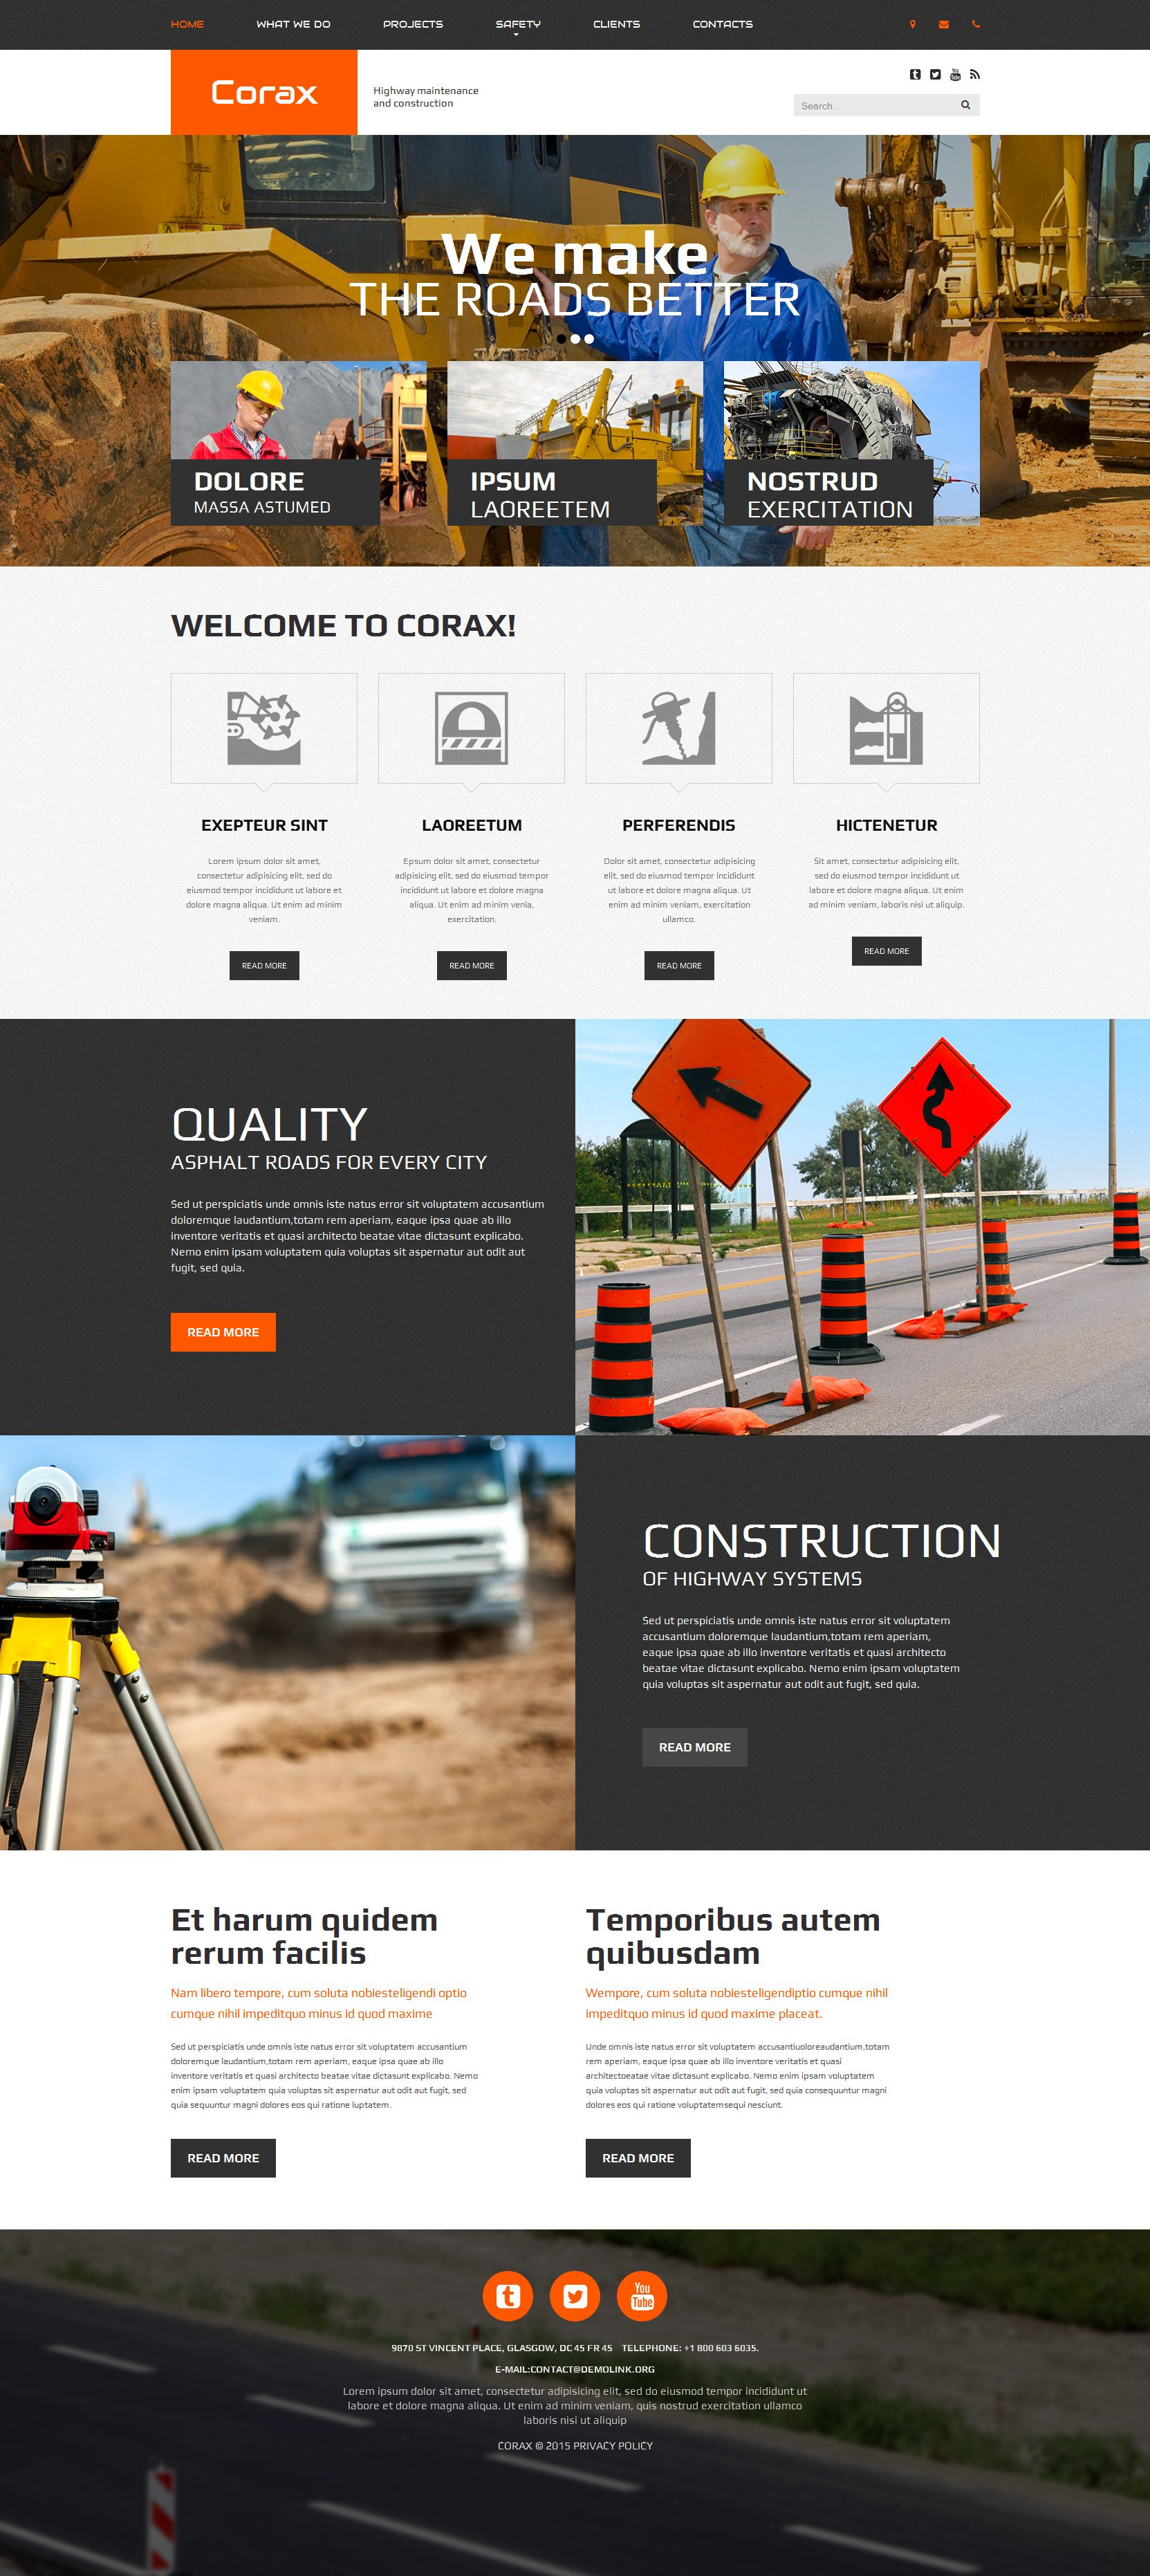 The Corax Highway Road Responsive Javascript Animated Design 53844, one of the best website templates of its kind (architecture, most popular), also known as Corax highway road website template, construction website template, repair website template, asphalt website template, paving website template, business website template, road website template, highway website template, pave website template, contractor website template, bitumen website template, services website template, projects website template, employment website template, way and related with Corax highway road, construction, repair, asphalt, paving, business, road, highway, pave, contractor, bitumen, services, projects, employment, way, etc.